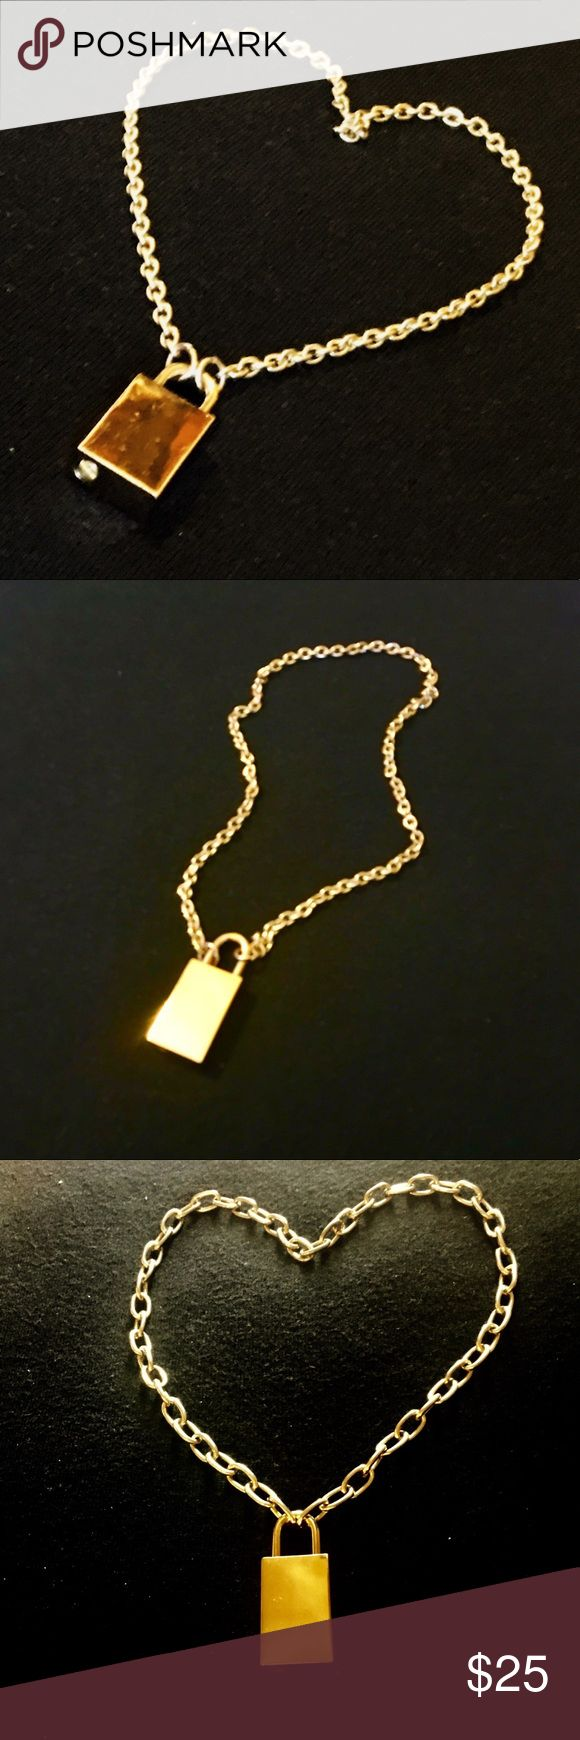 """💝Lock & chain necklace Upcycled lock & chain necklace. Available with your choice of chain: 16"""" chunky chain or 18"""" smaller link, please see photos. Lock 1.25"""" (approximate measurements). Would make a fun gift for Valentine's day for you or a loved one. Jewelry Necklaces"""